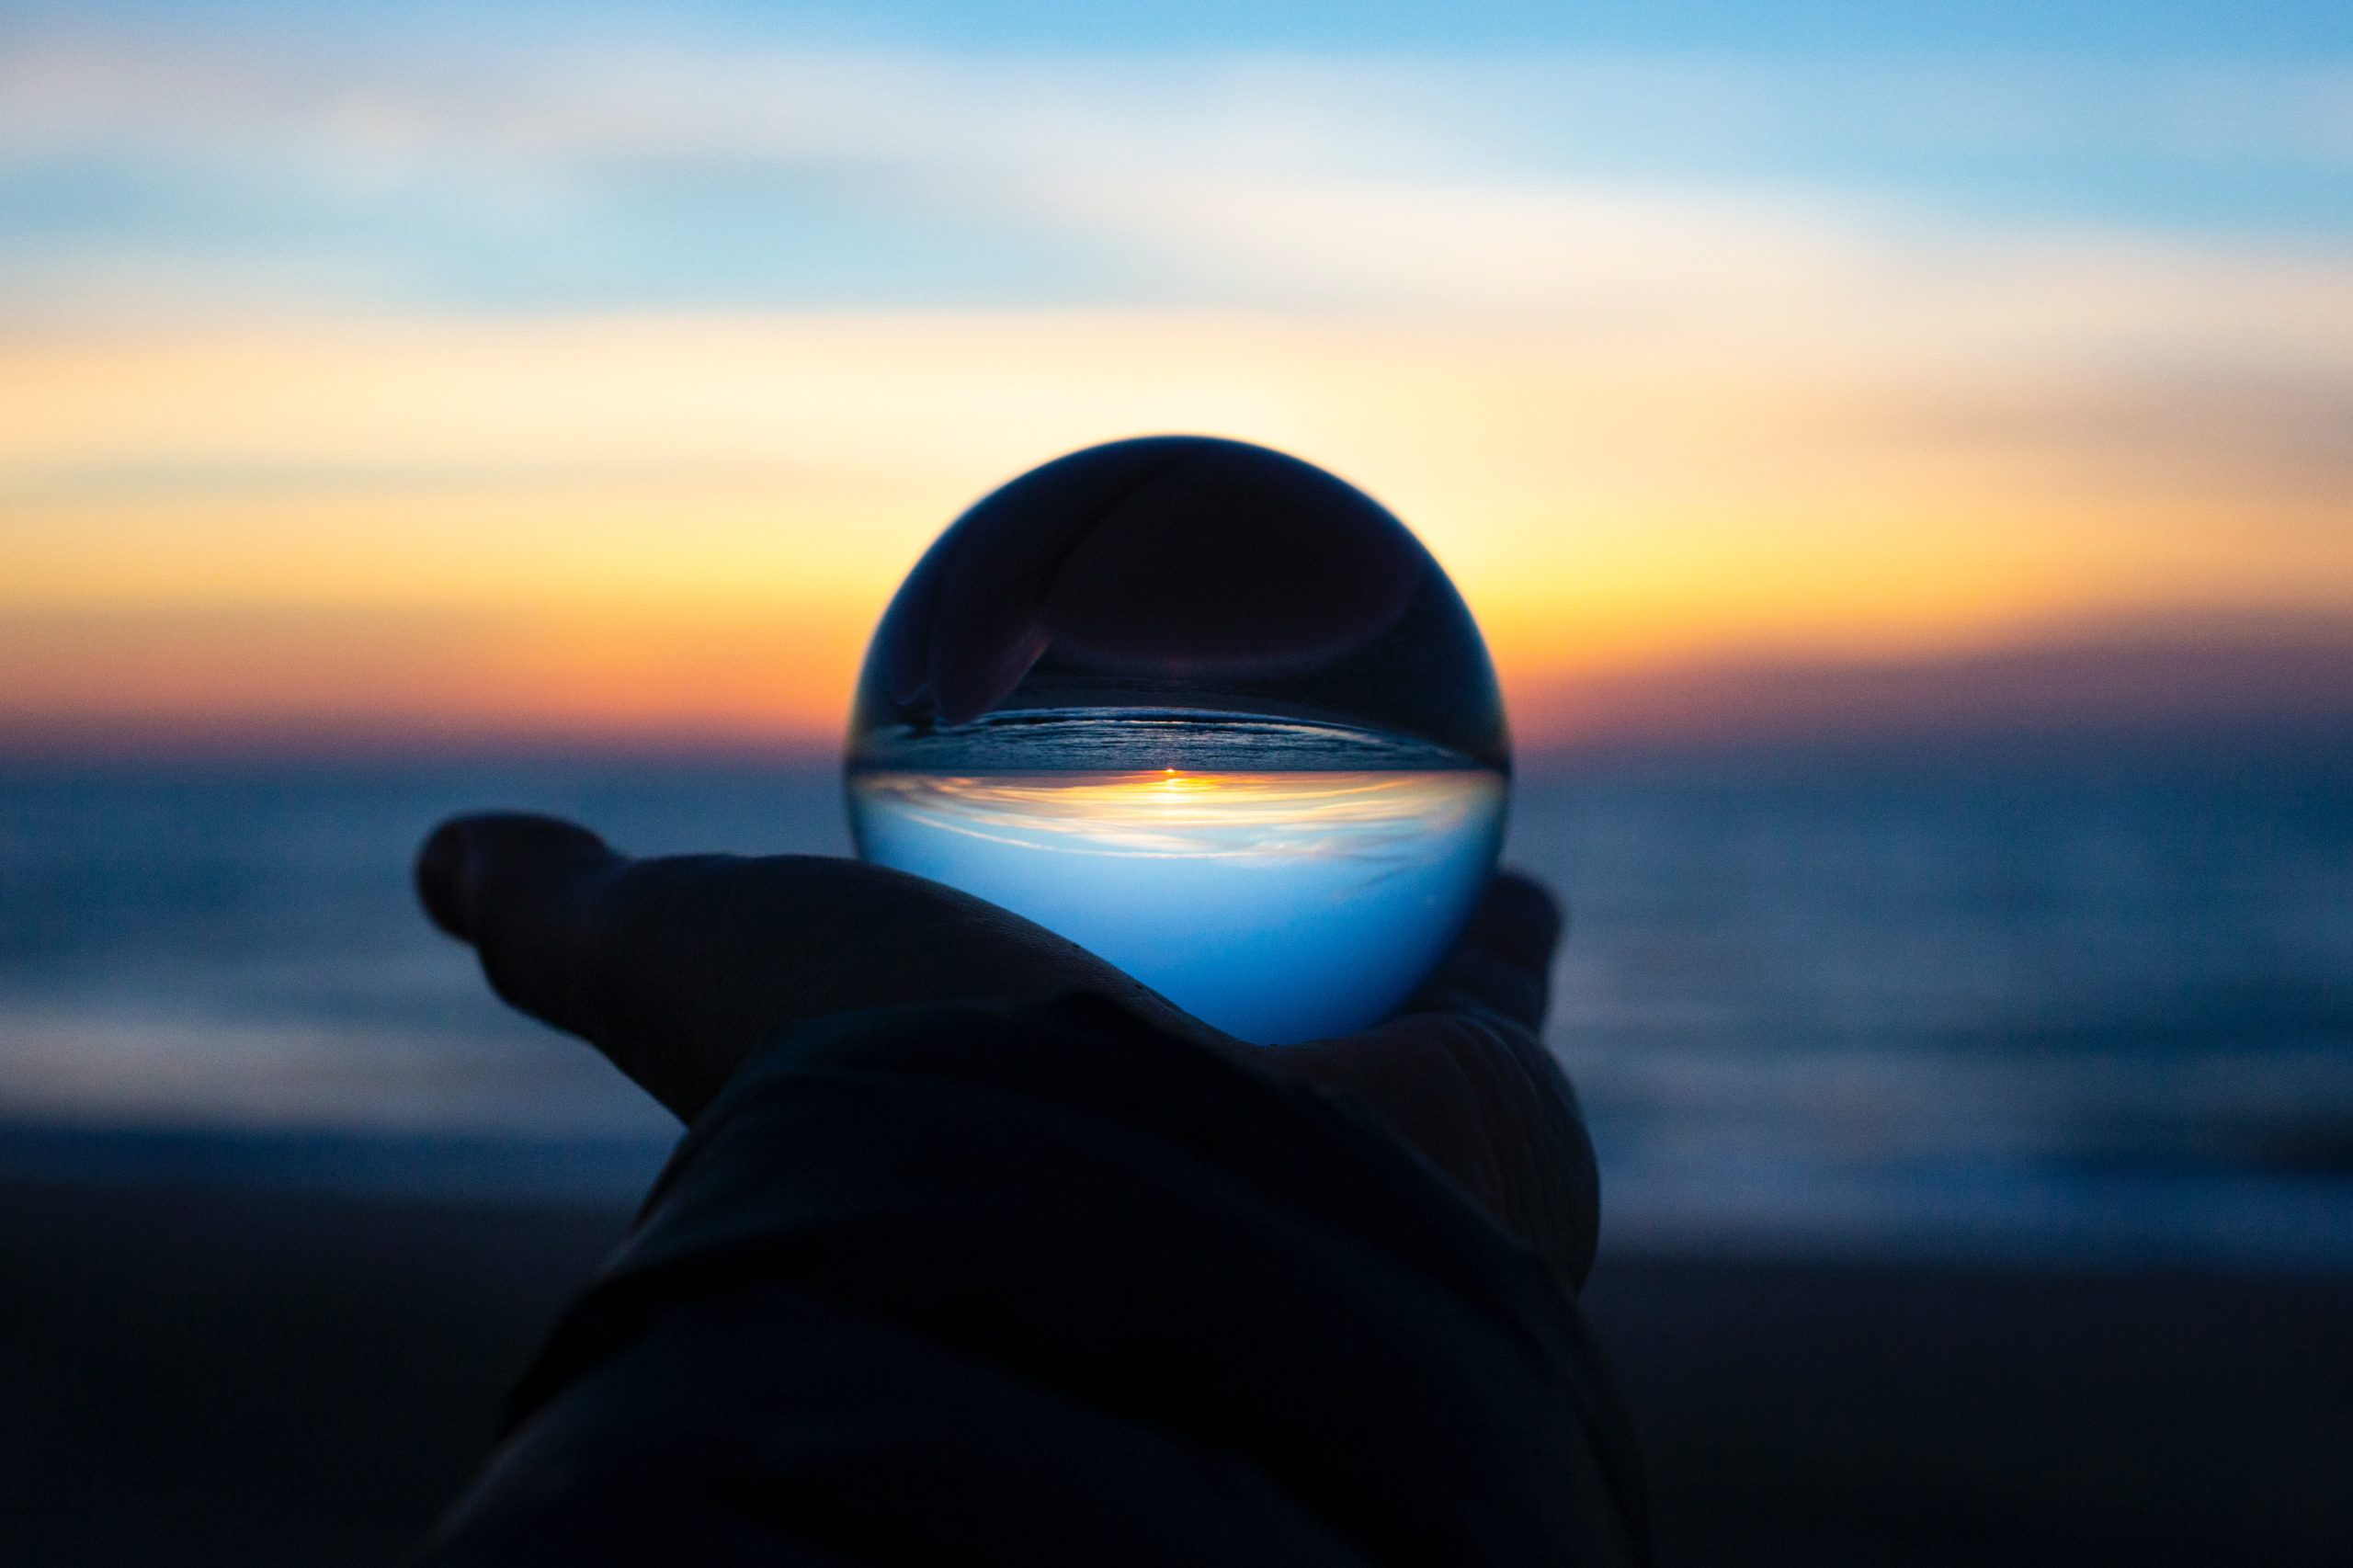 Hand holding a crystal ball which inverts the sunset